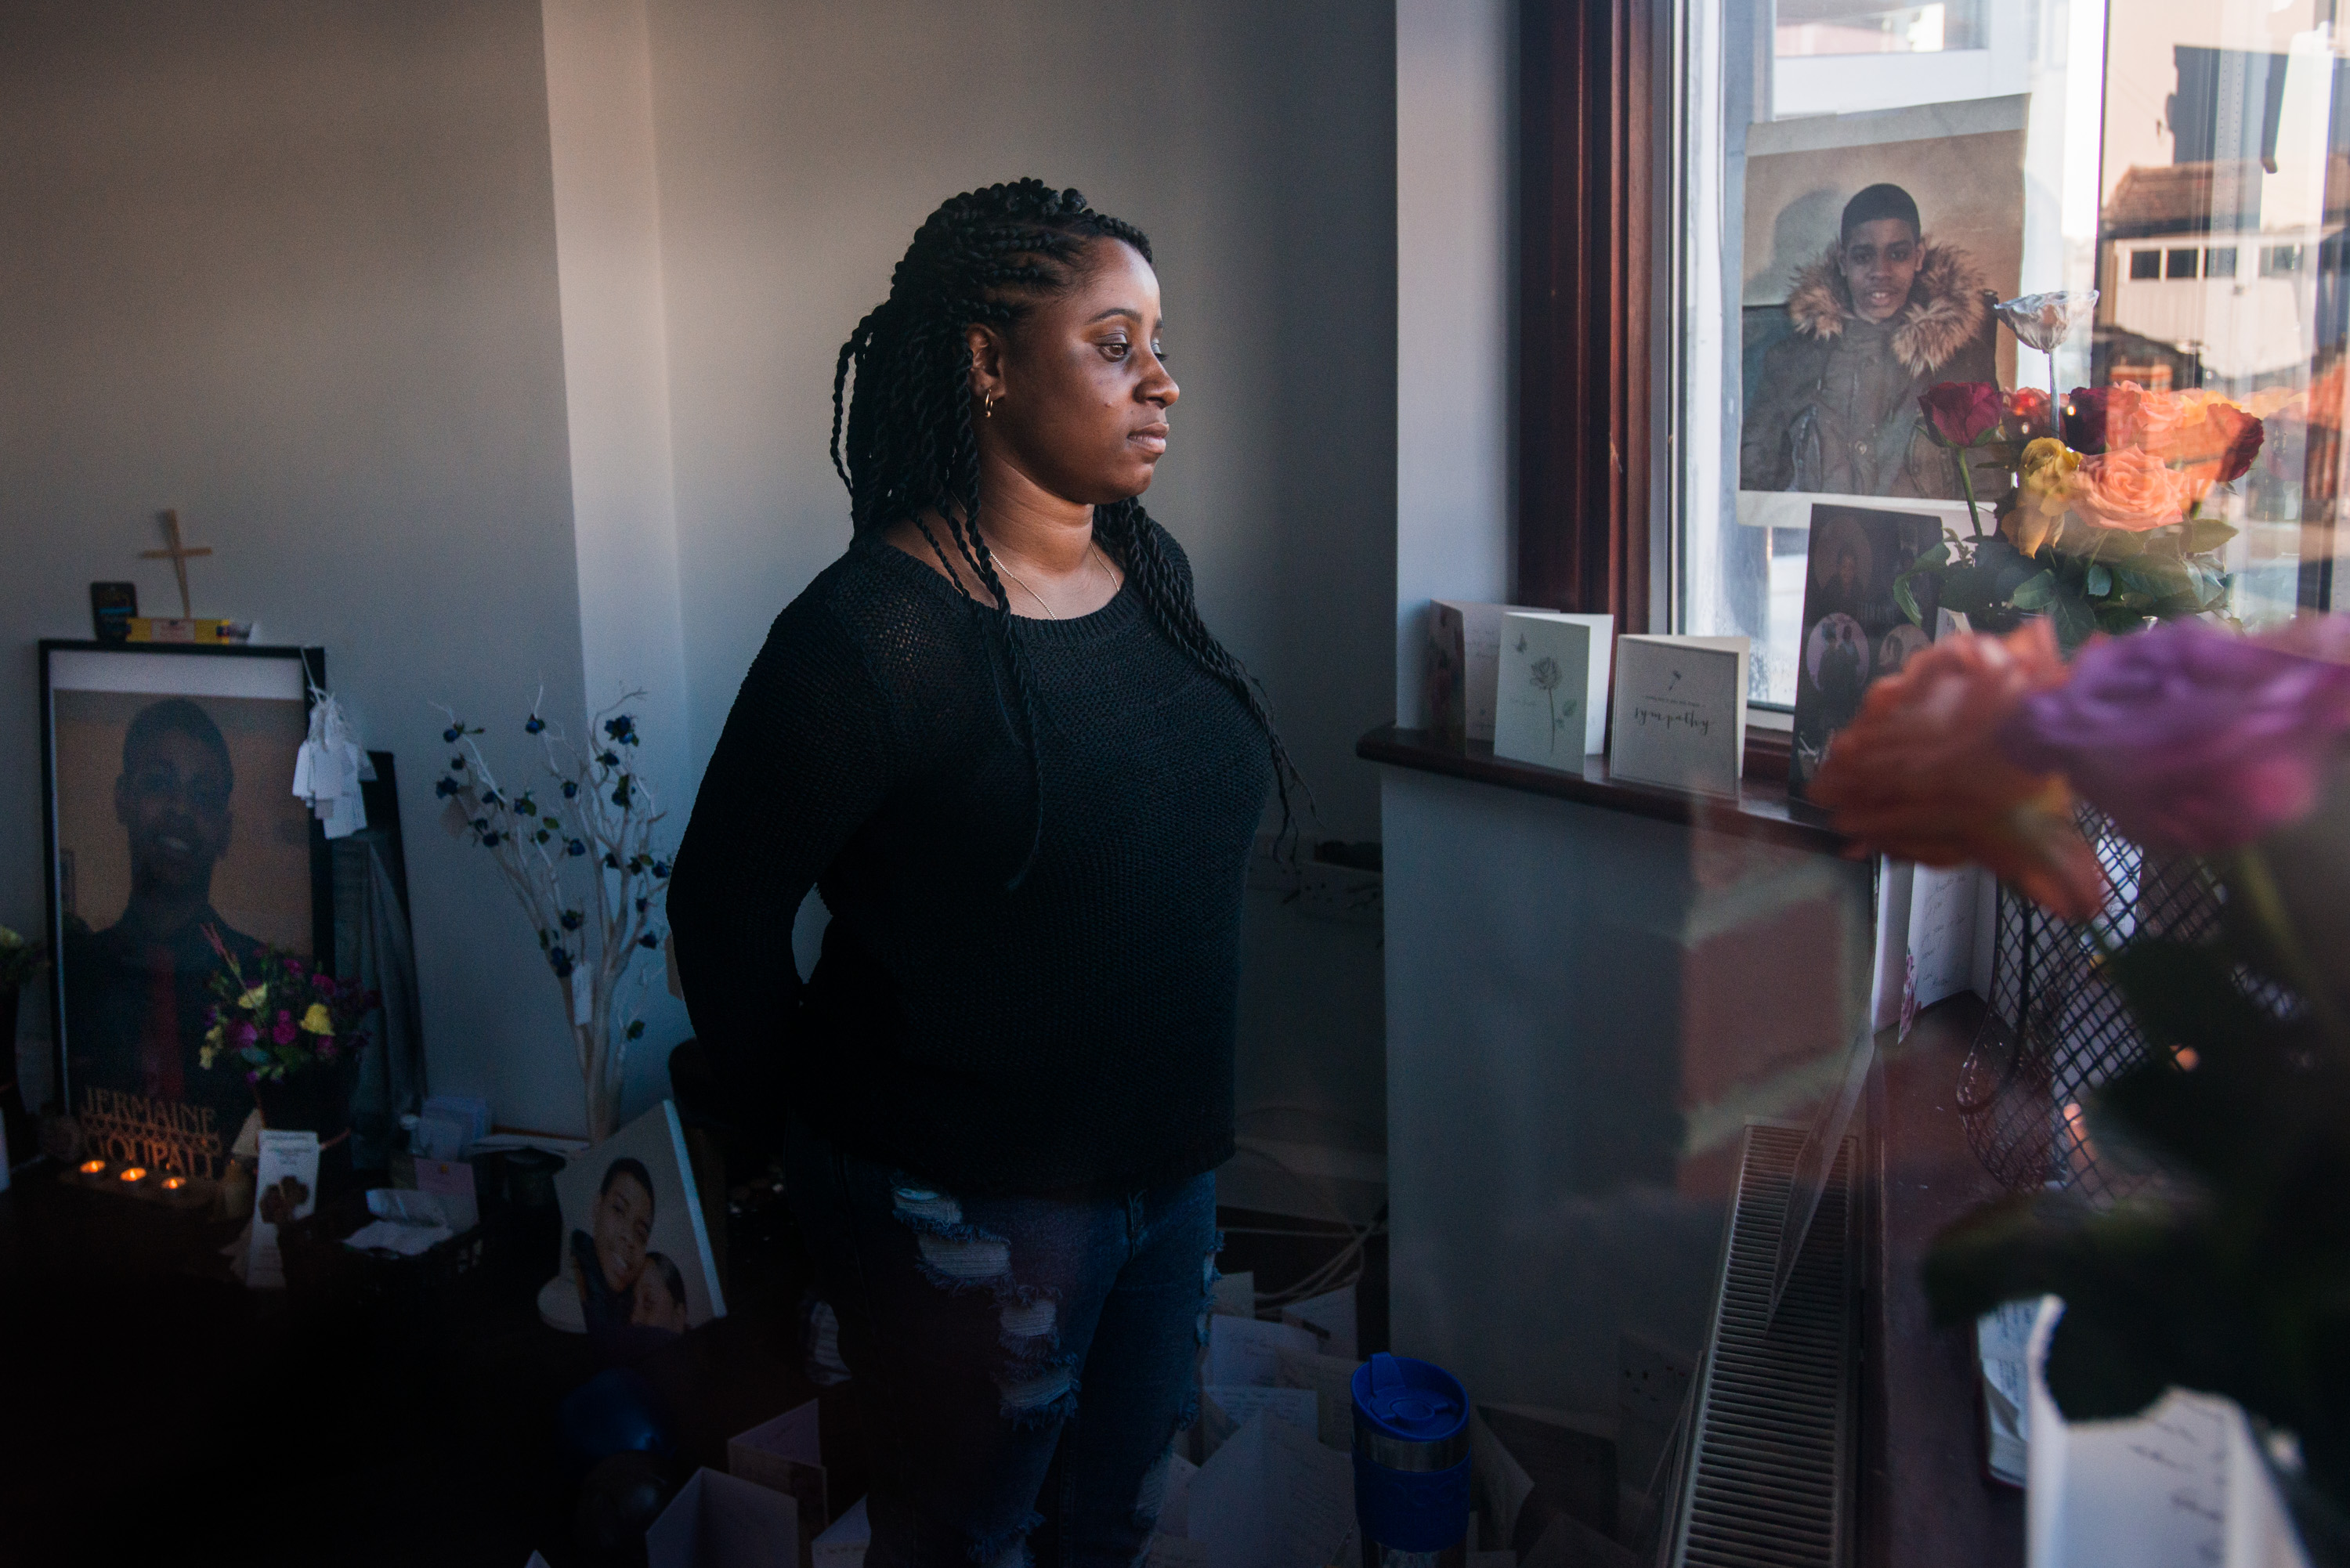 Goupall is seen through the window of her family's front room in Thornton Heath, south London. The room has become a shrine dedicated to honoring the life of her brother, Jermaine.